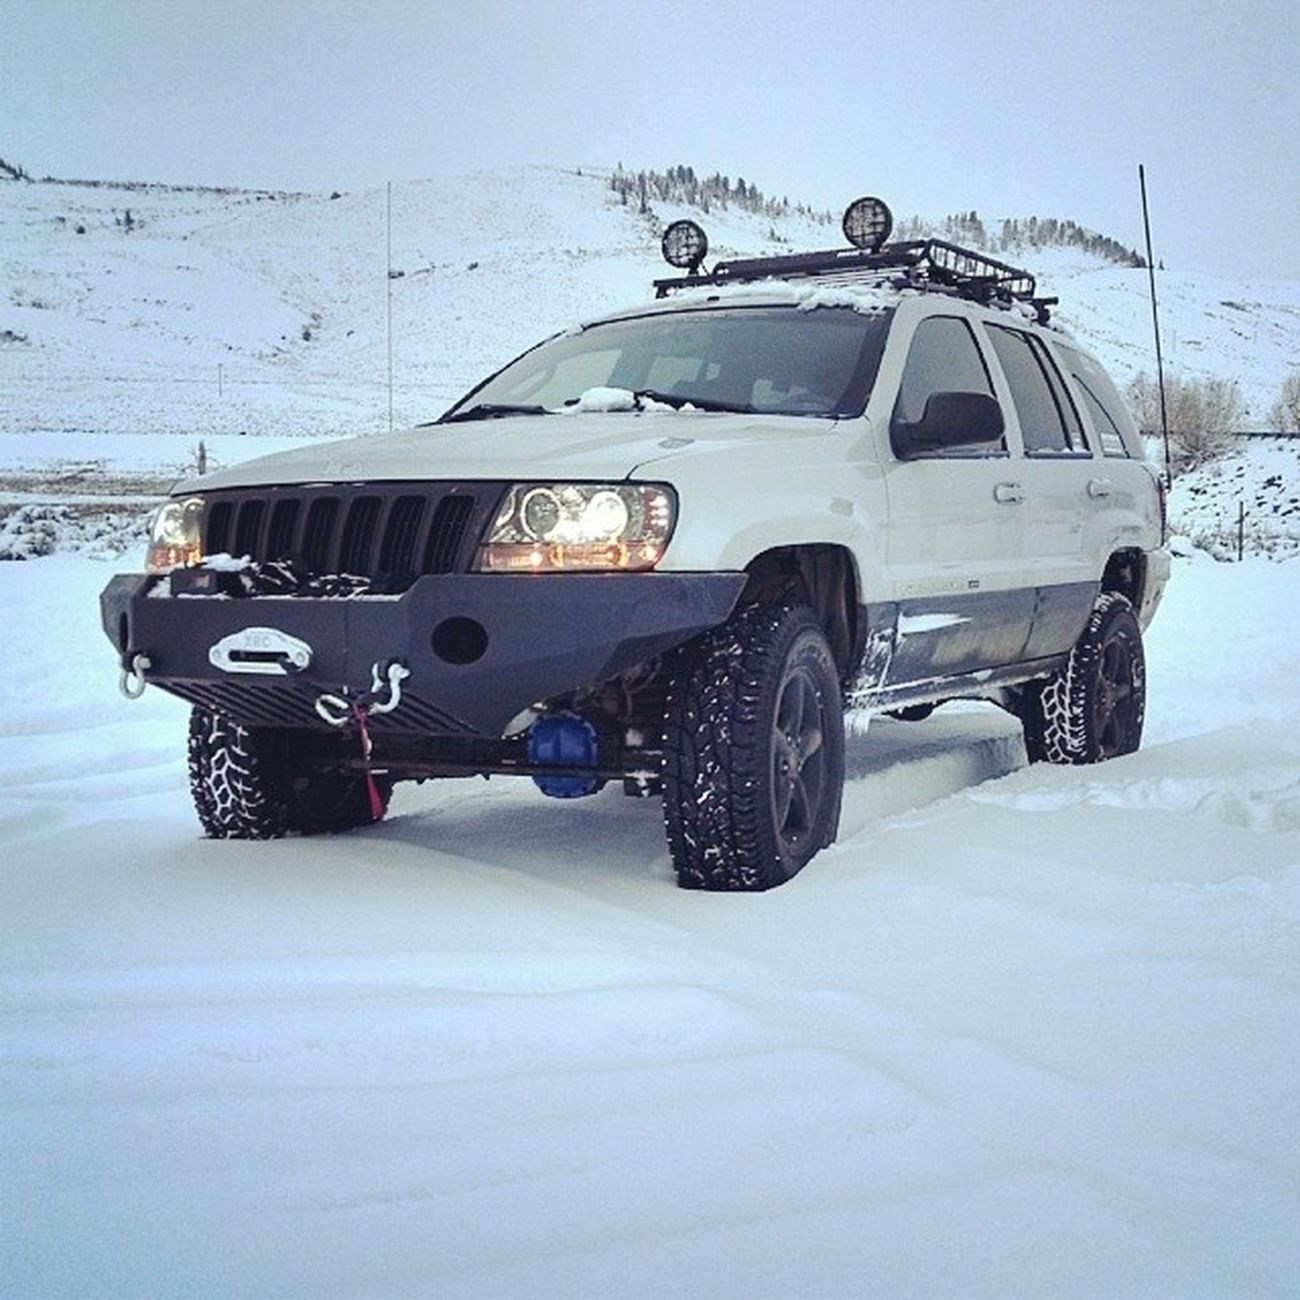 @americas_wjs @jeepwjs Snow Wheelin Mountainlion Hunting